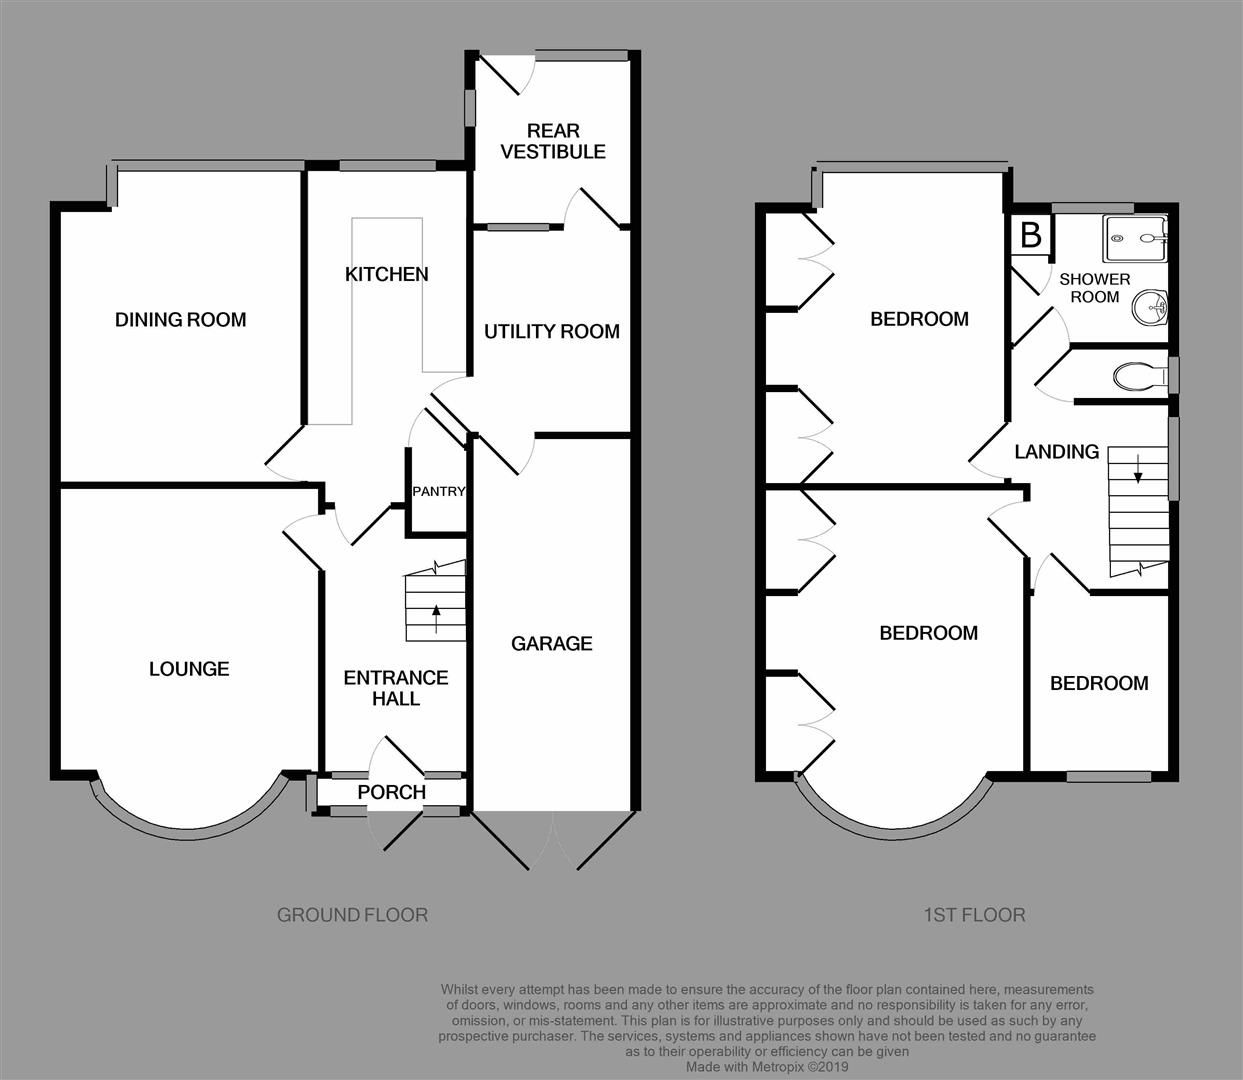 3 bed semi-detached for sale - Property Floorplan